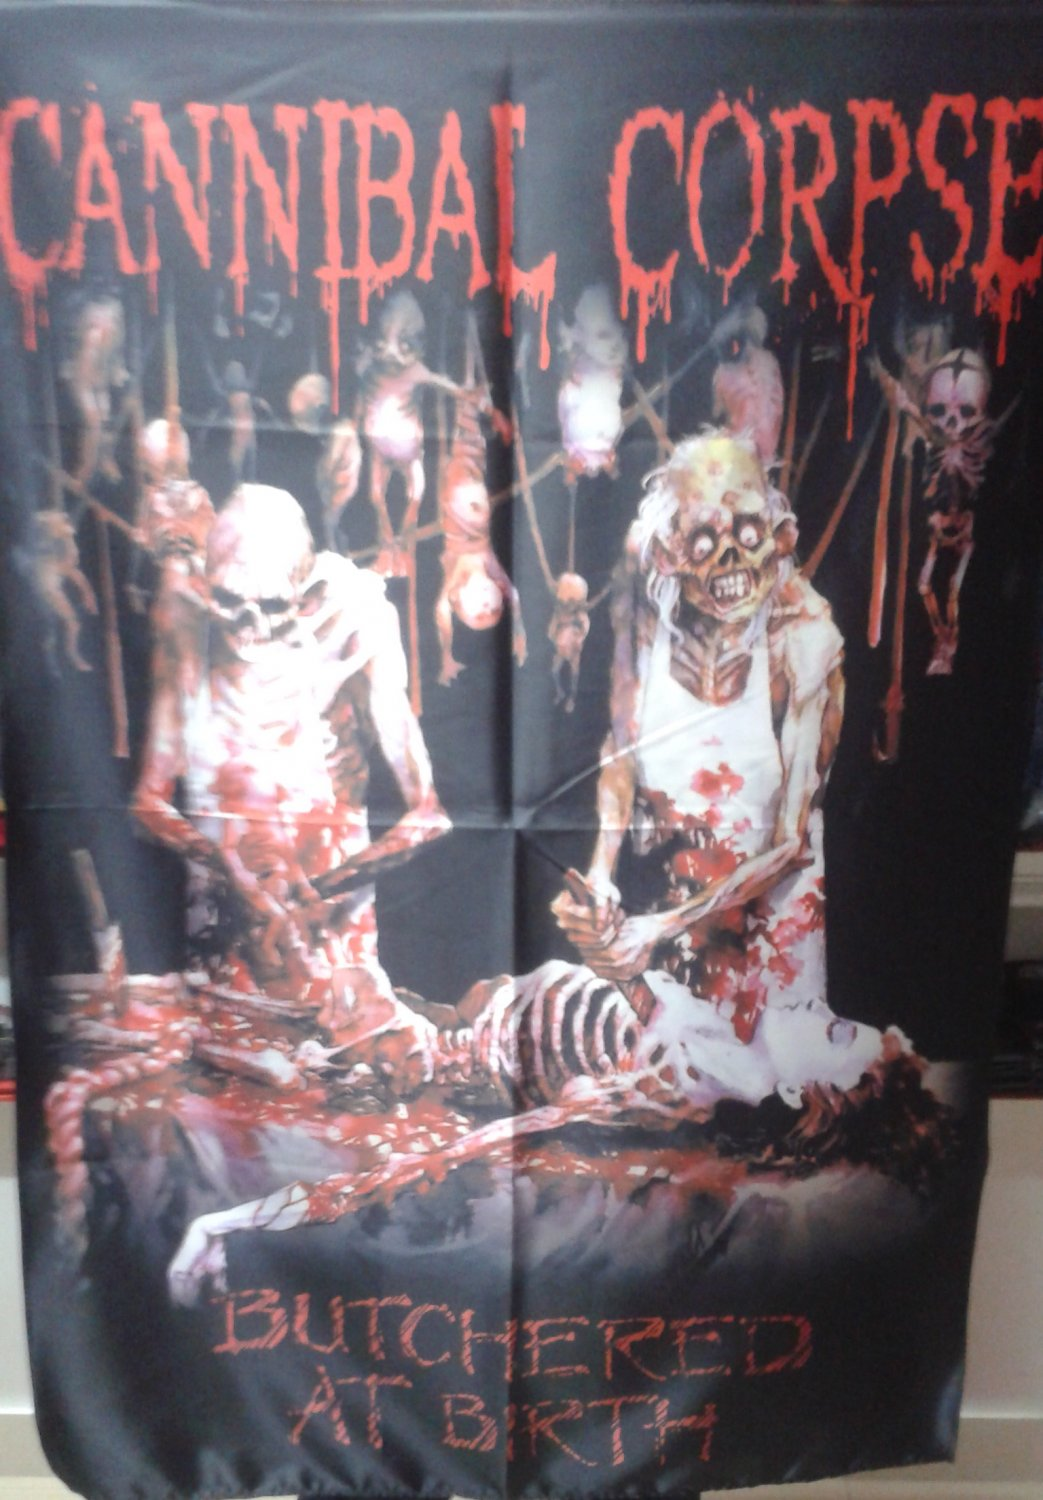 CANNIBAL CORPSE Butchered at Birth FLAG CLOTH POSTER WALL TAPESTRY CD Death Metal